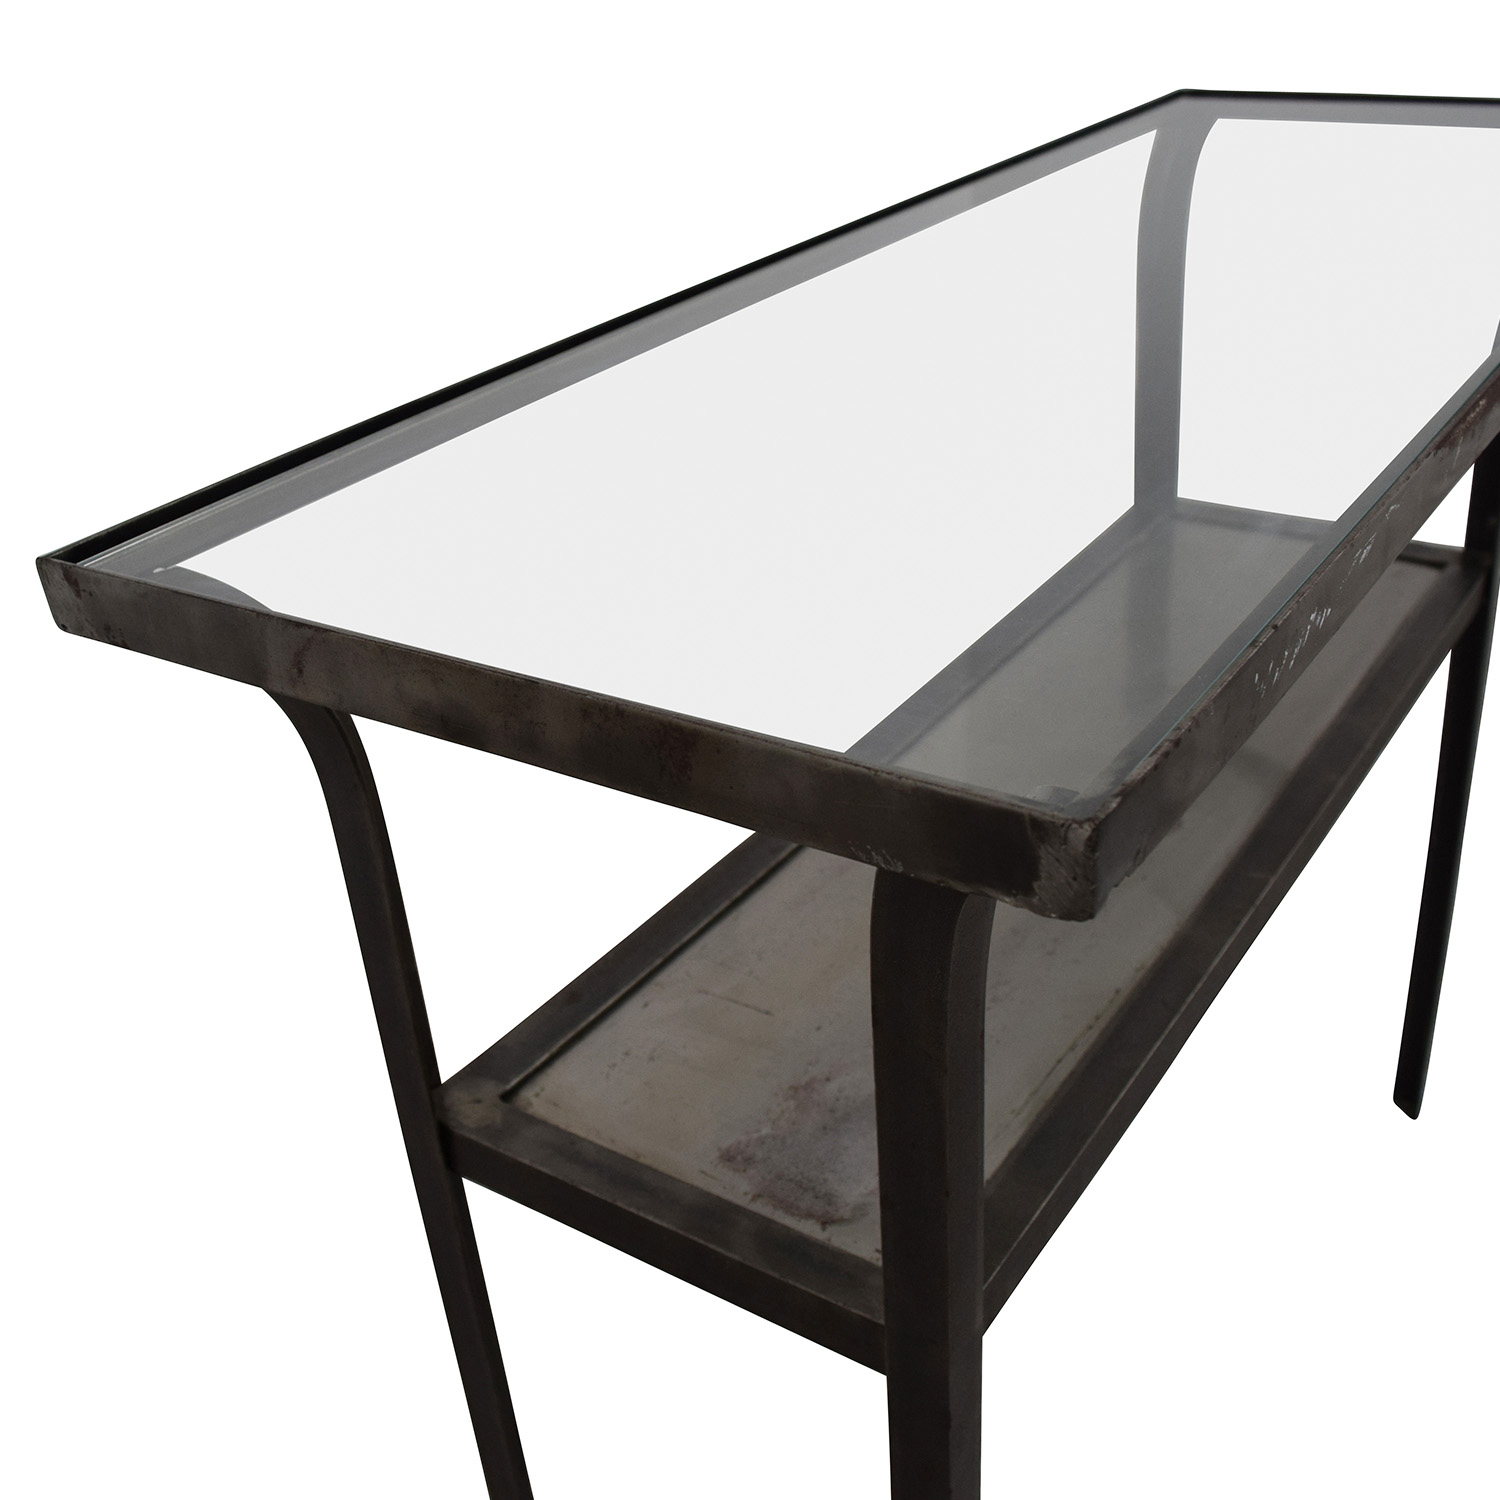 buy Crate & Barrel Crate & Barrel Metal and Glass Console Table online